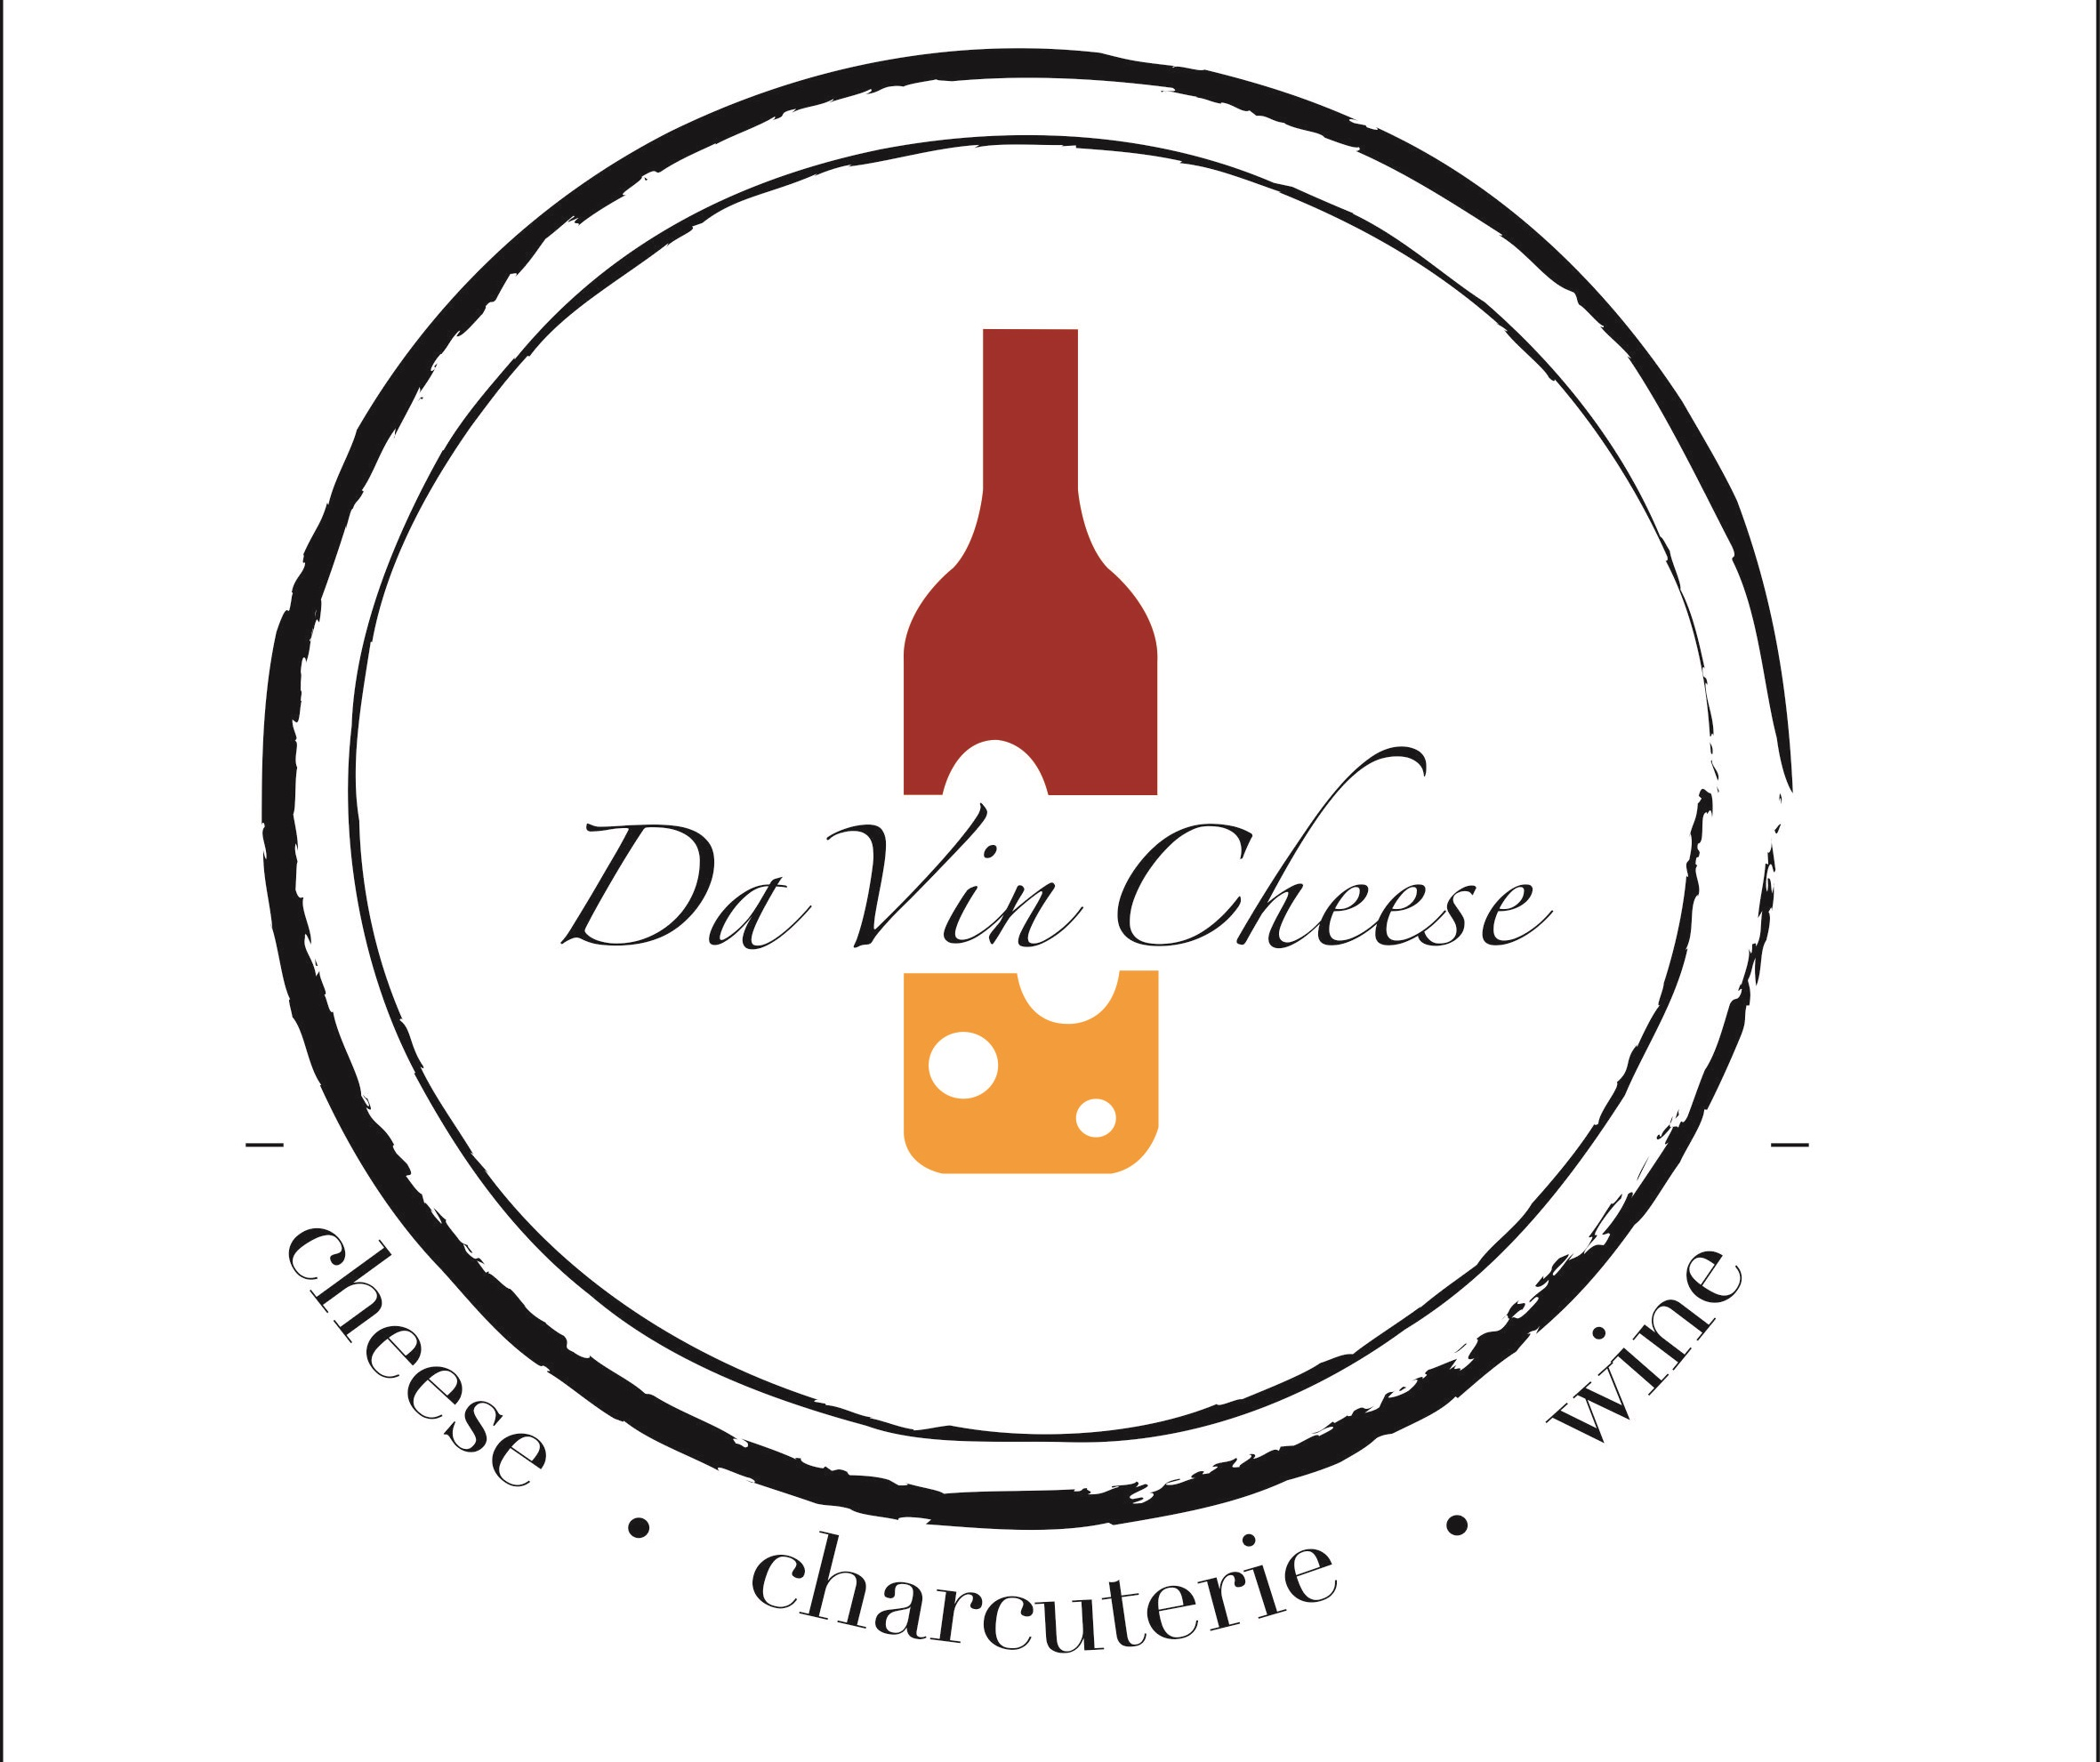 Da Vin Cheese